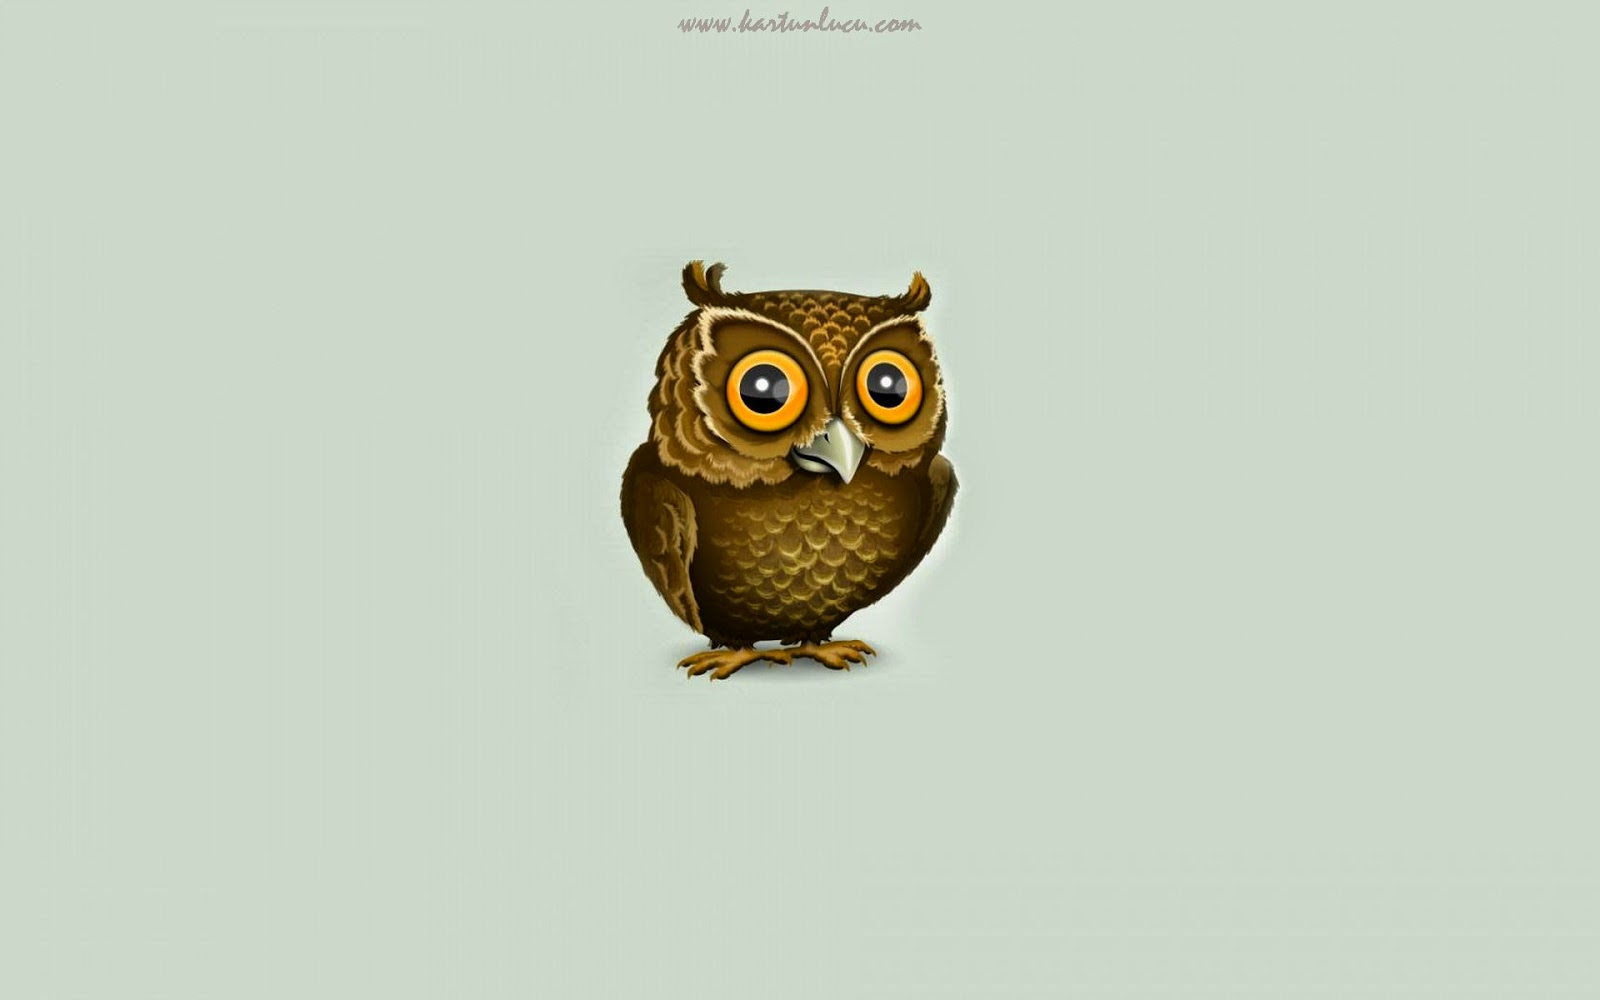 Download 4600 Wallpaper Animasi Burung Terbaik